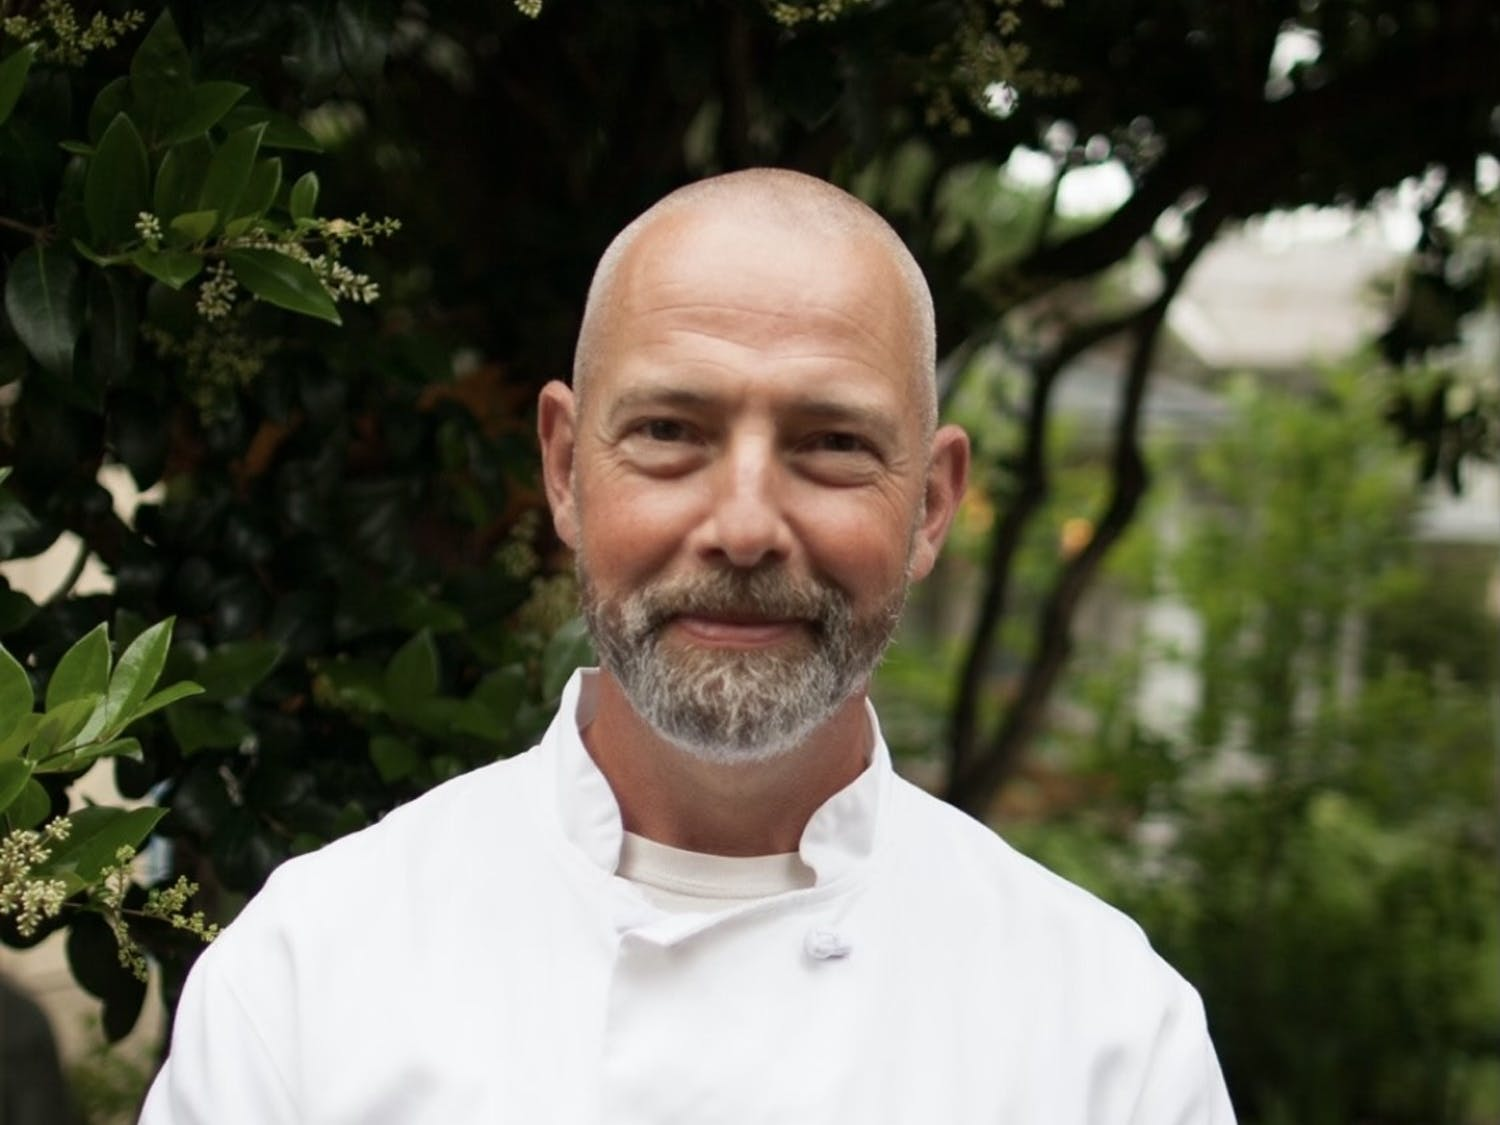 Baptist Knaven, head chef of Mosaic Cafe and Bistro, poses for a portrait. Photo courtesy of Brian Cansler.